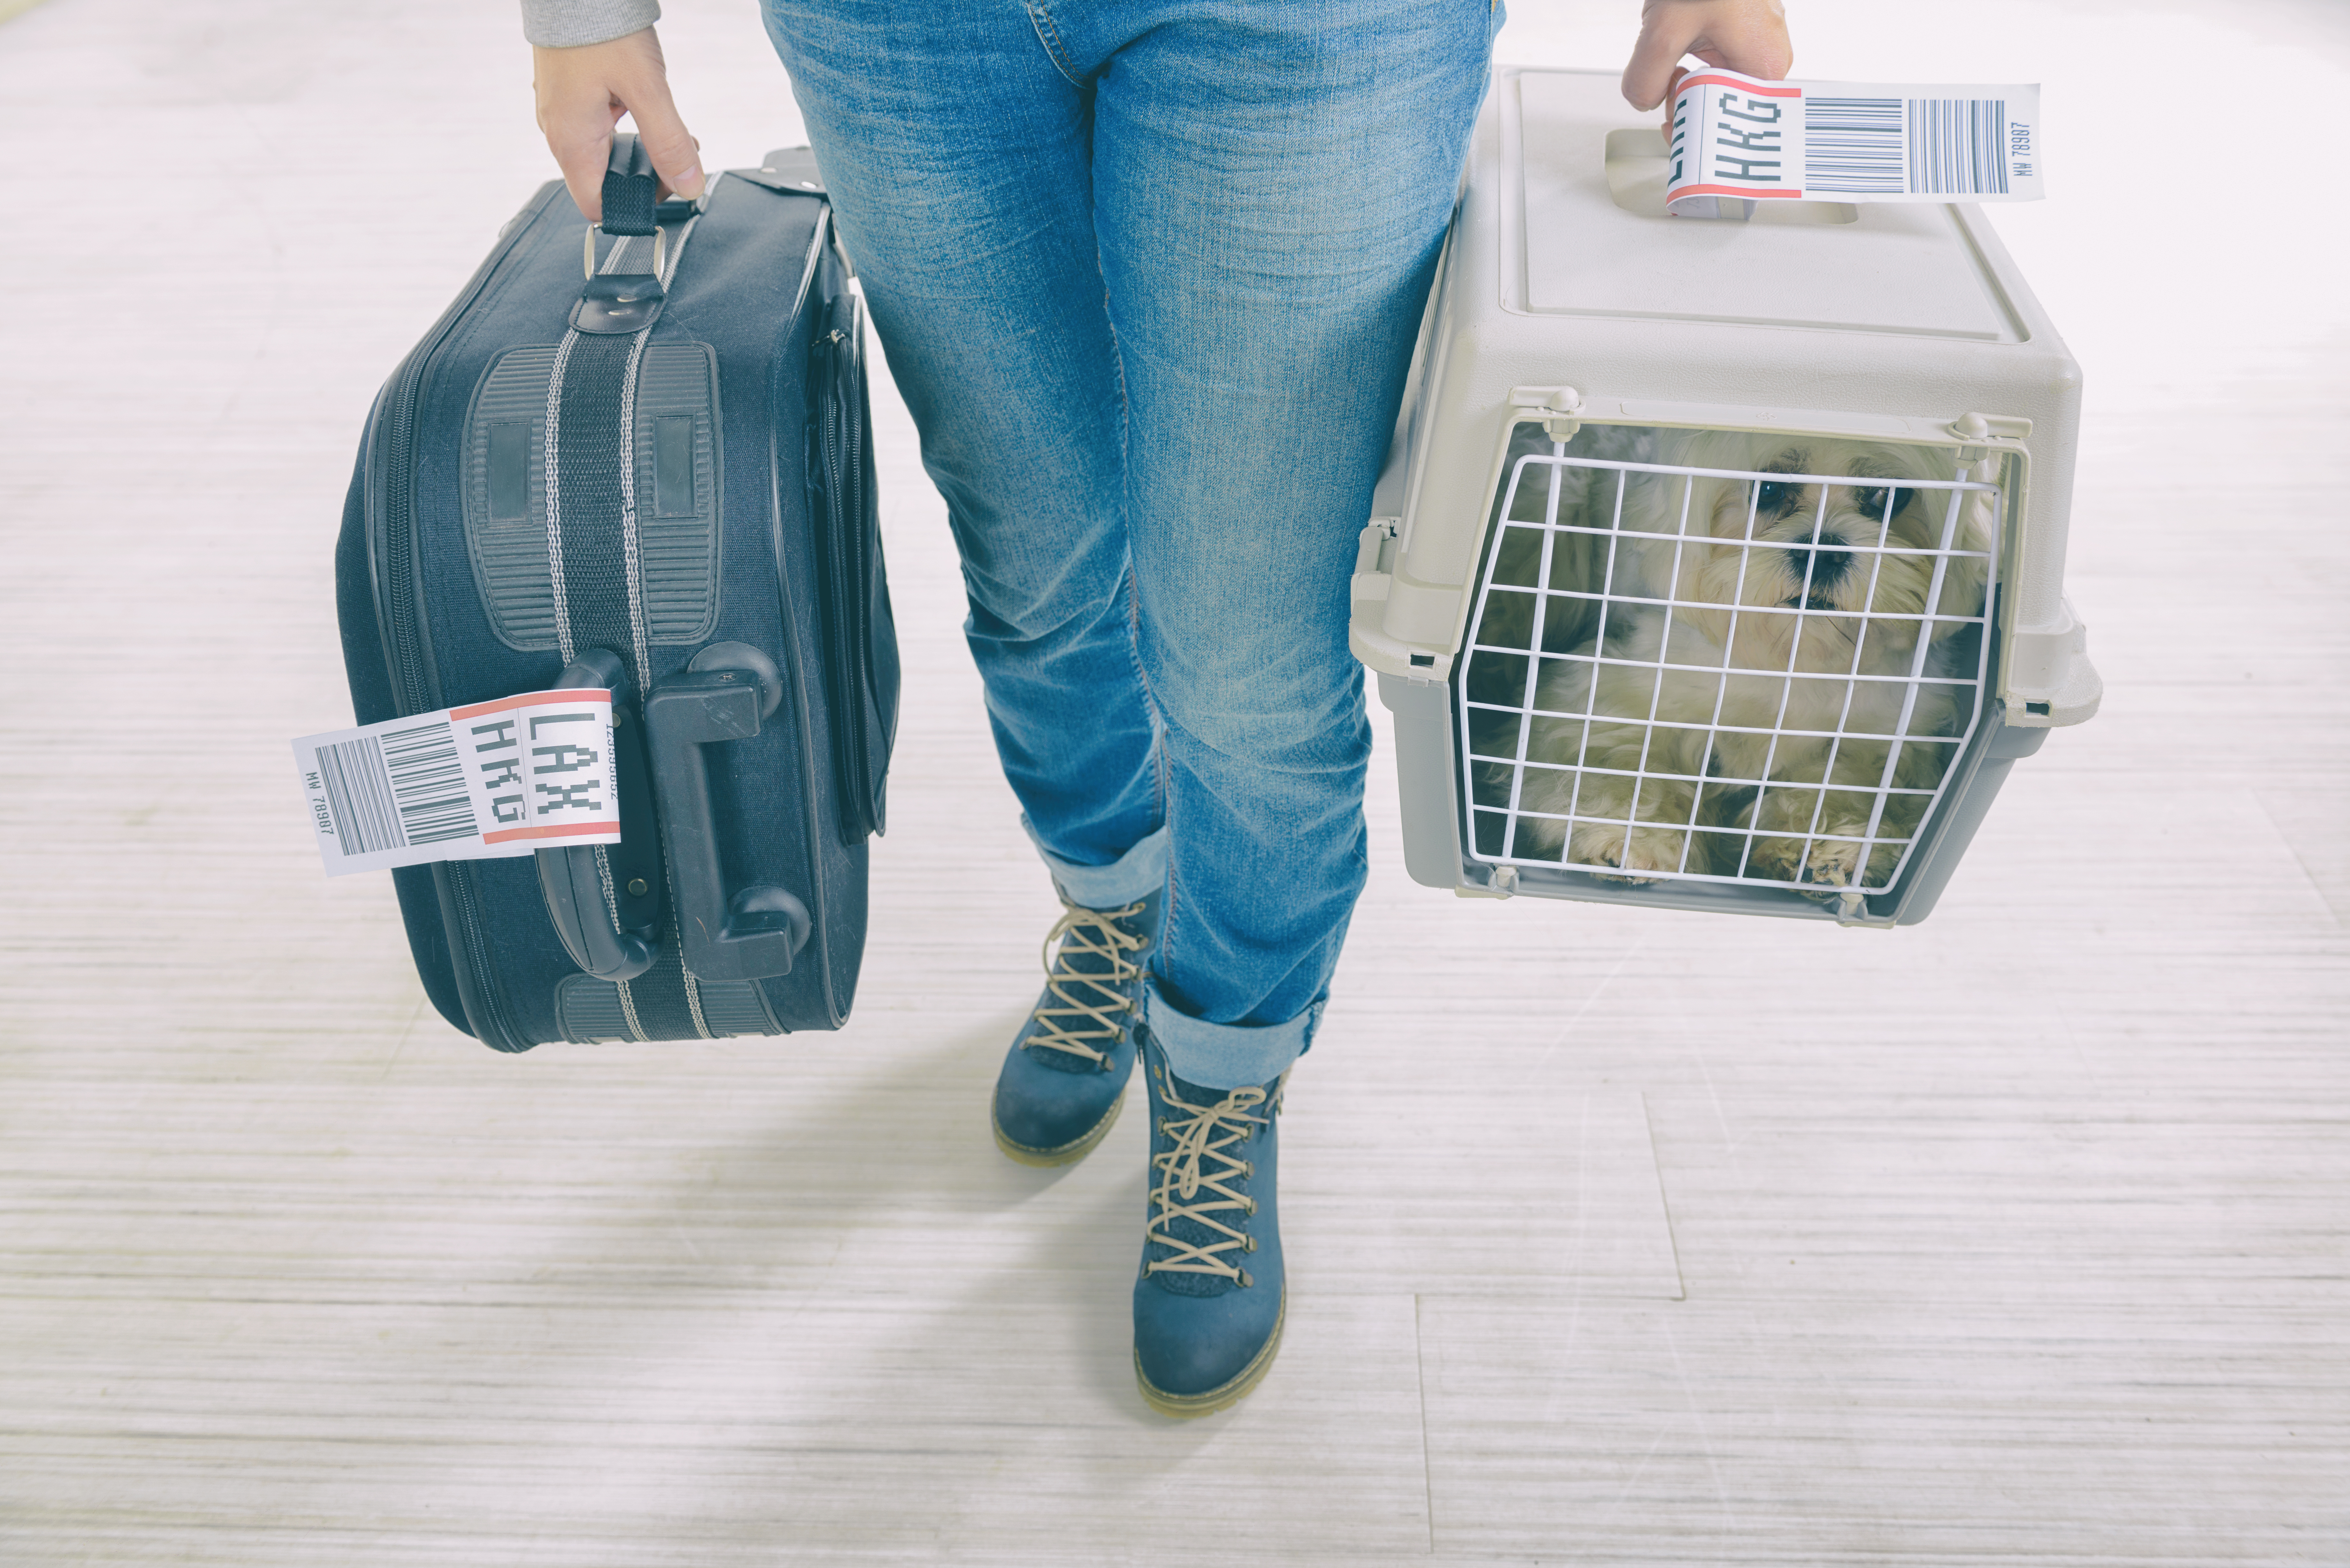 Tips for Transporting a Dog in an Airplane